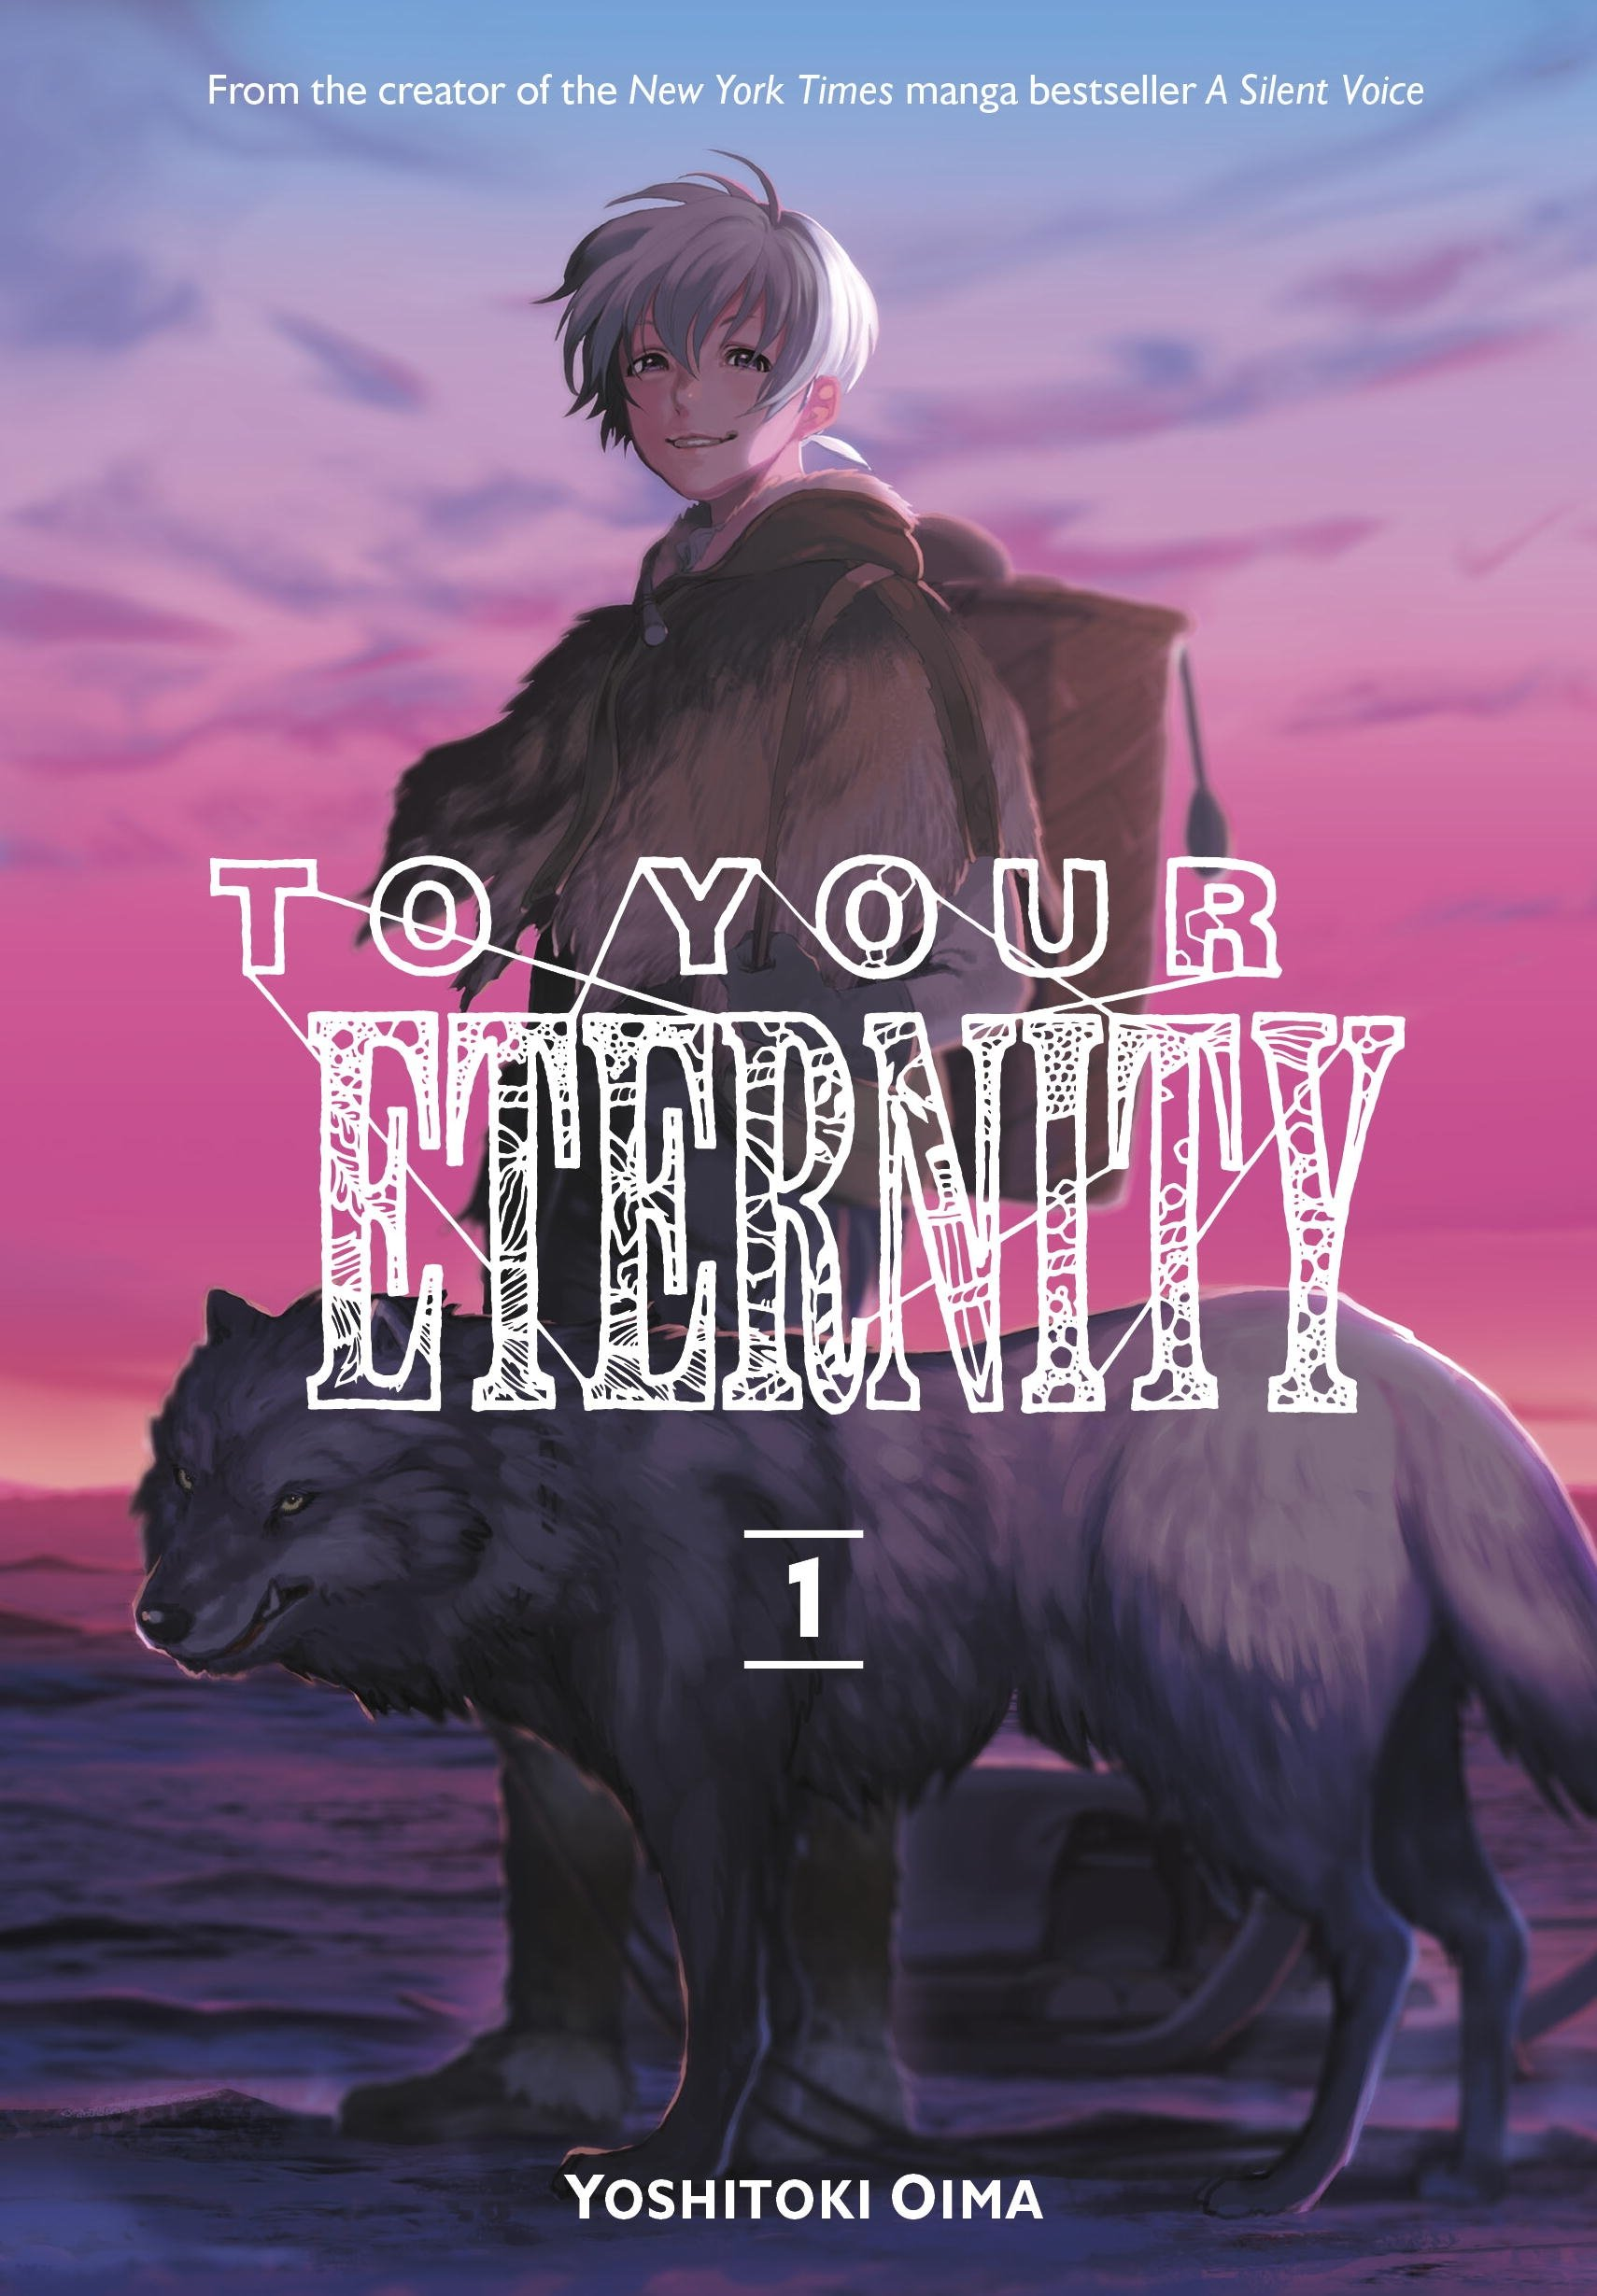 Amazon.com: To Your Eternity 1 (9781632365712): Oima, Yoshitoki: Knihy